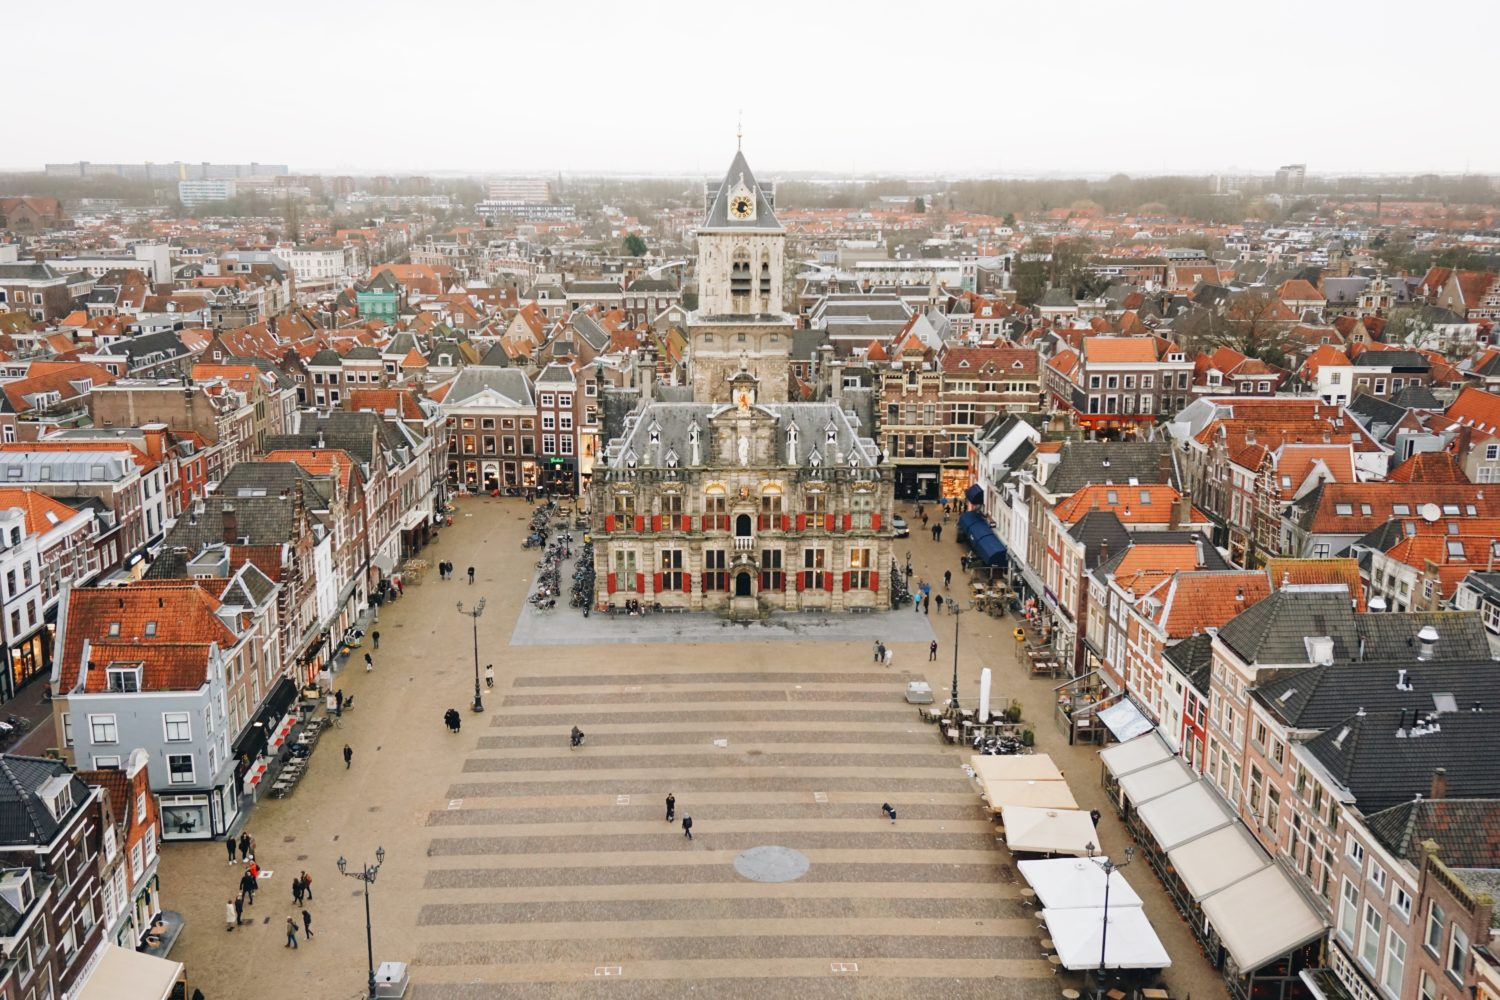 Scenic Delft: 15 great photos to make you wanna visit